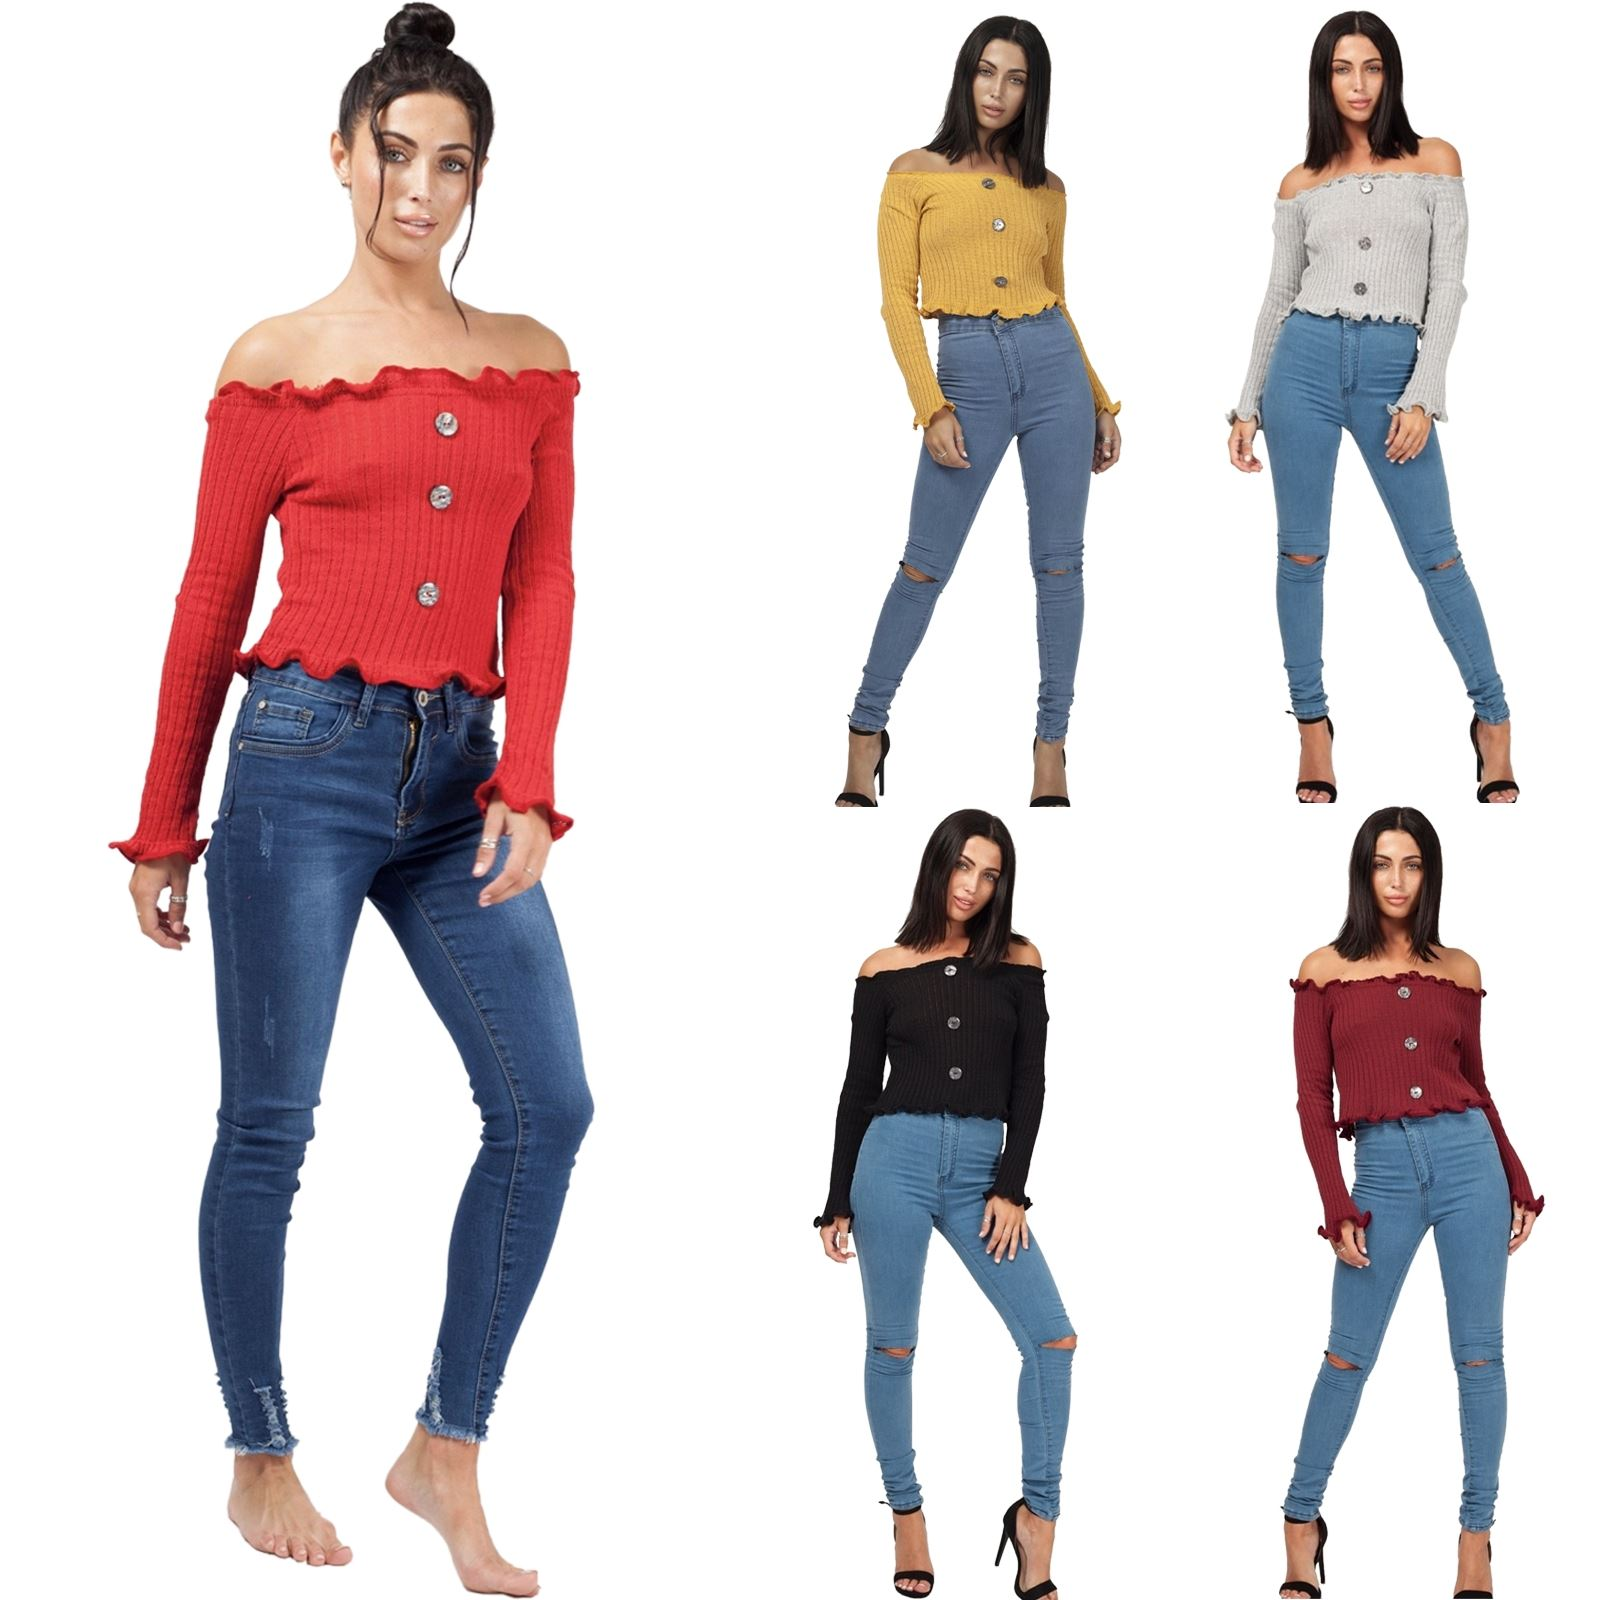 96a9c652b58be Details about New Womens Bardot Off Shoulder Button Frill Ribbed Knitted  Crop Jumper Warm Top